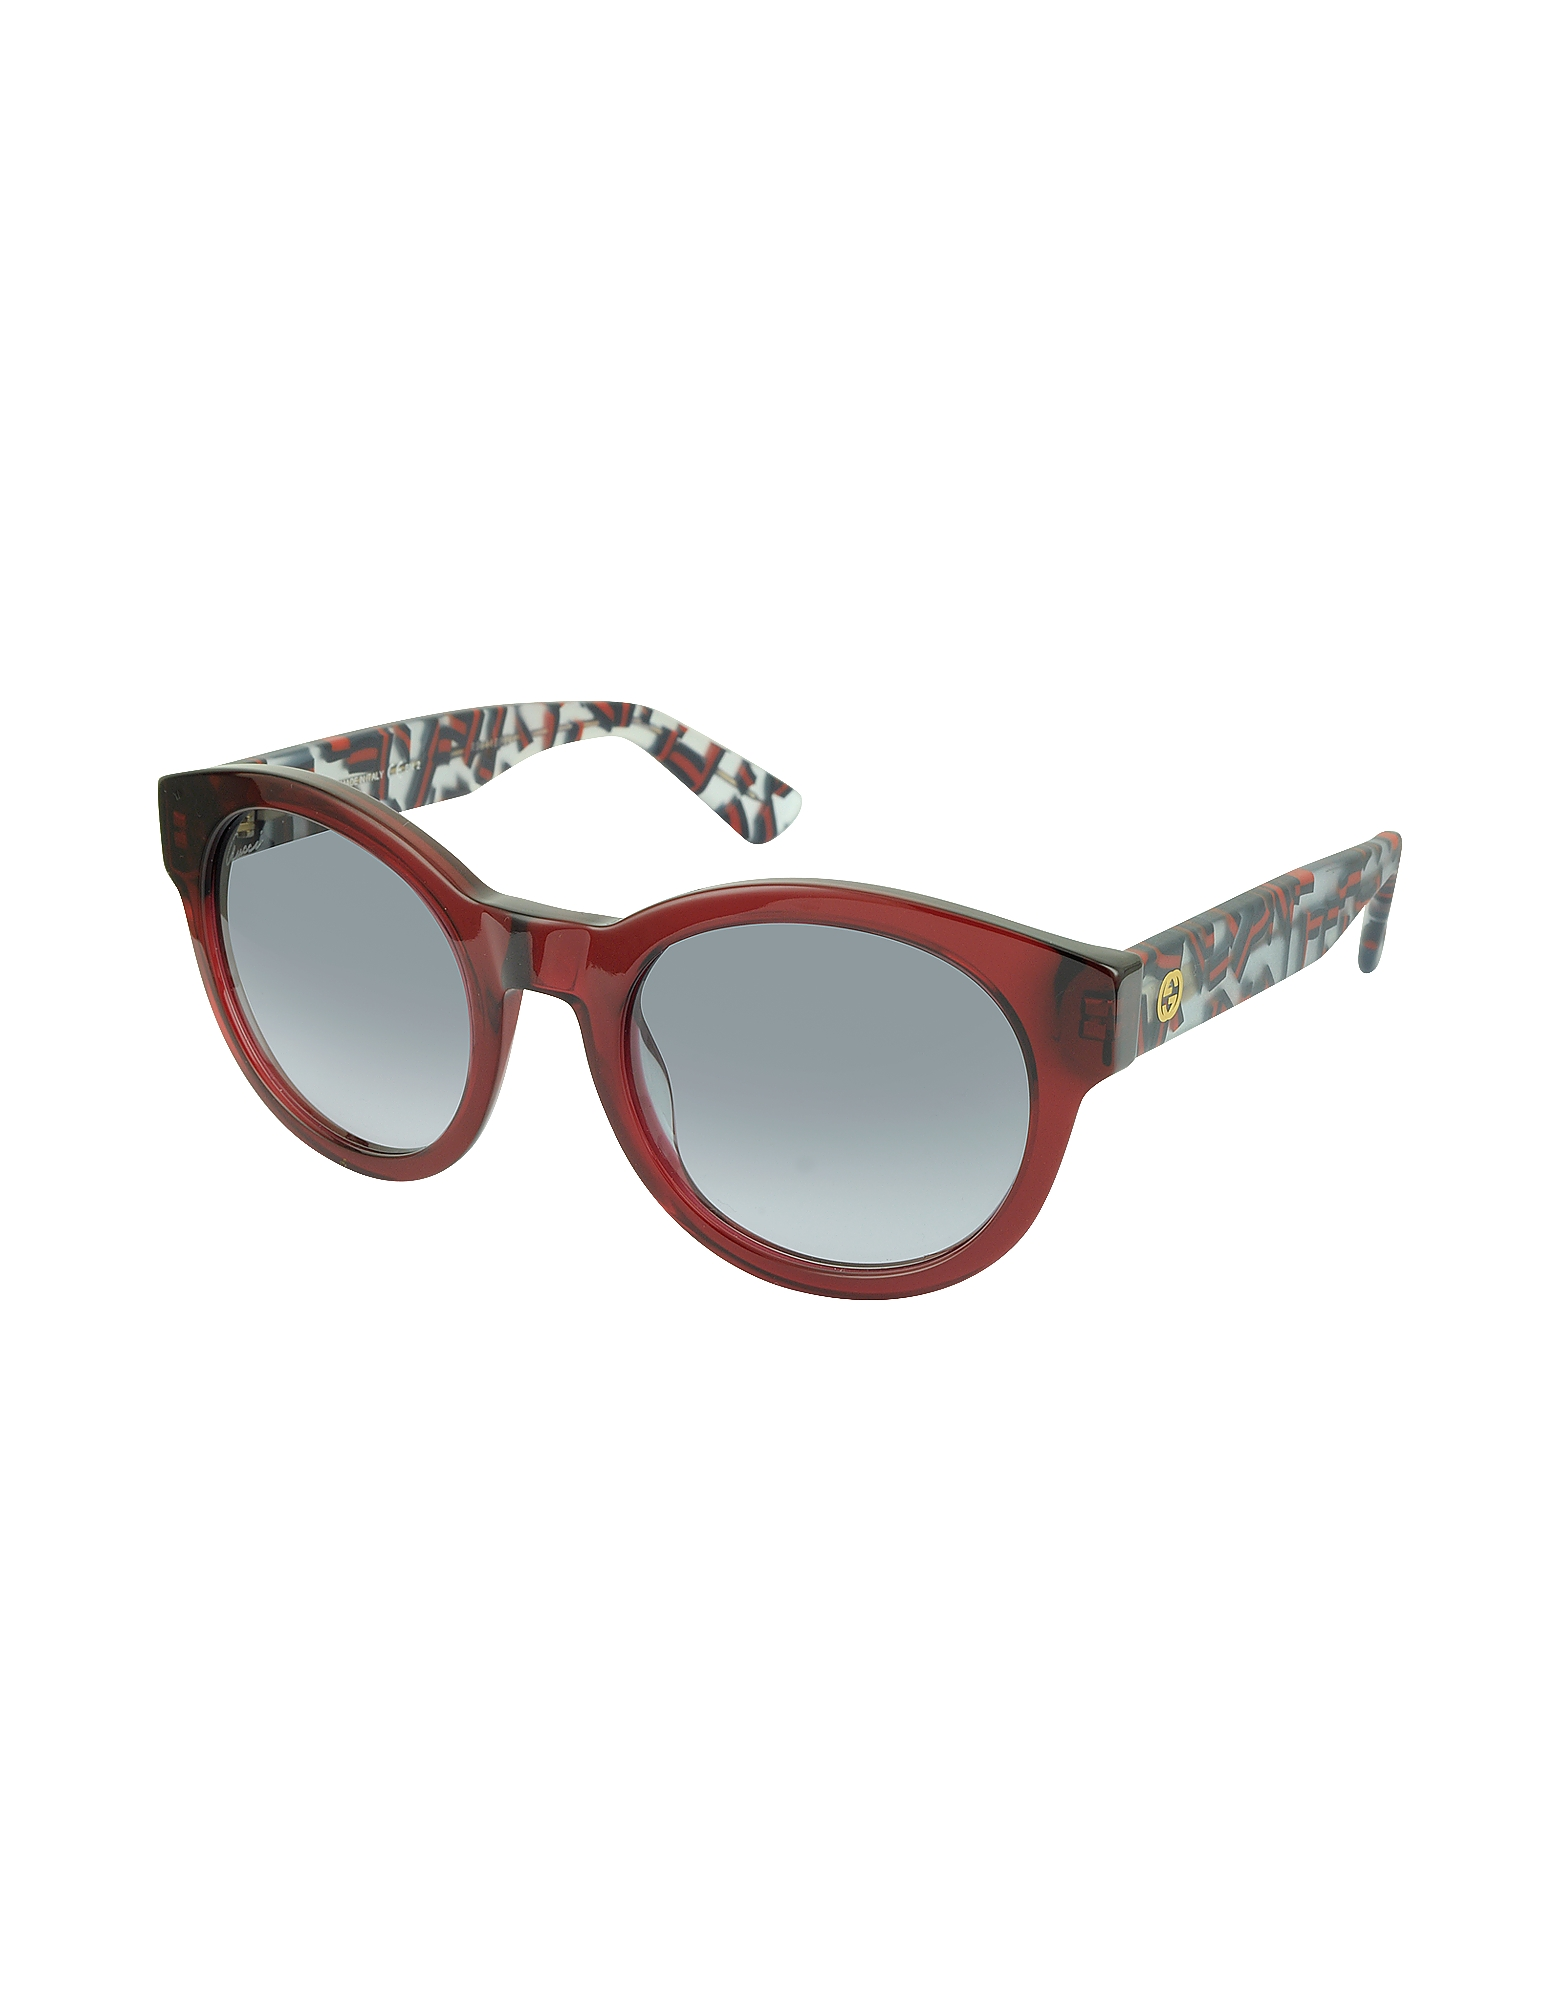 GG 3763/S Acetate Round Sunglasses w/Red & Green Web Detail от Forzieri INT